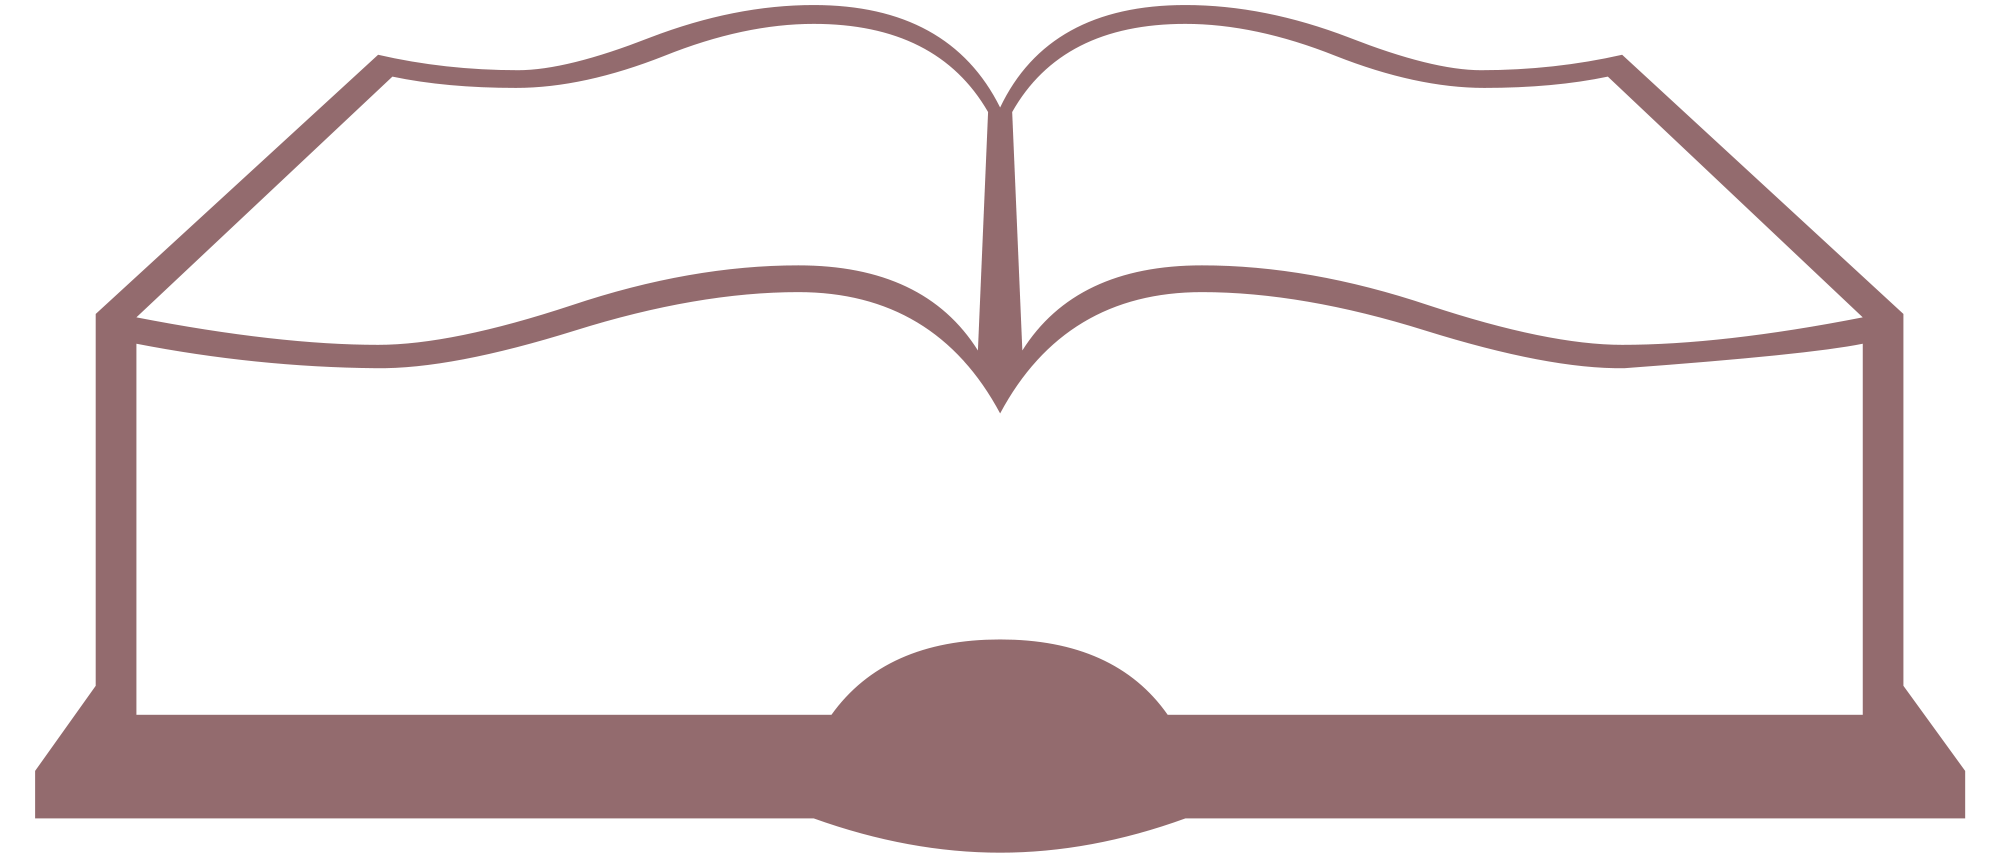 svg transparent library Books svg silhouette. File book wikimedia commons